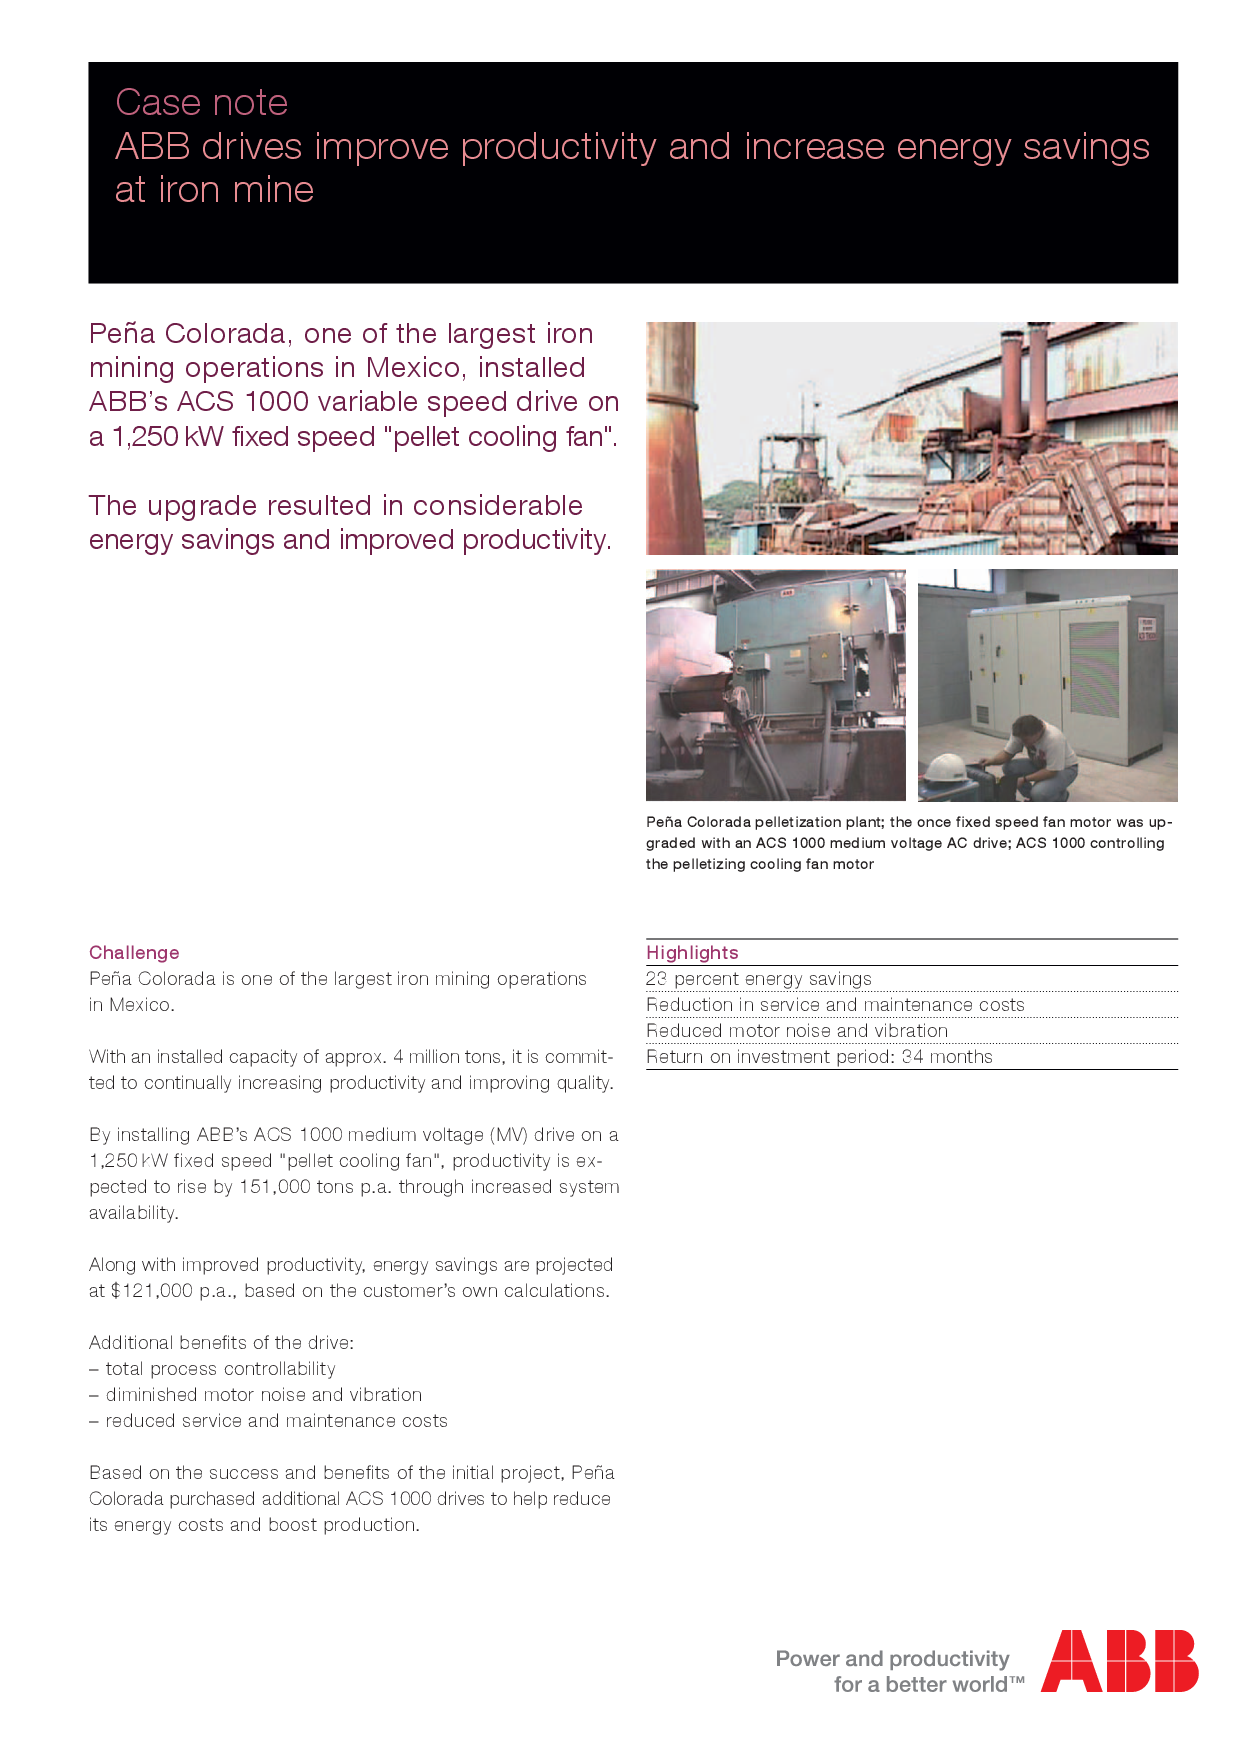 Case note ABB drives improve productivity and increase energy savings  at iron mine